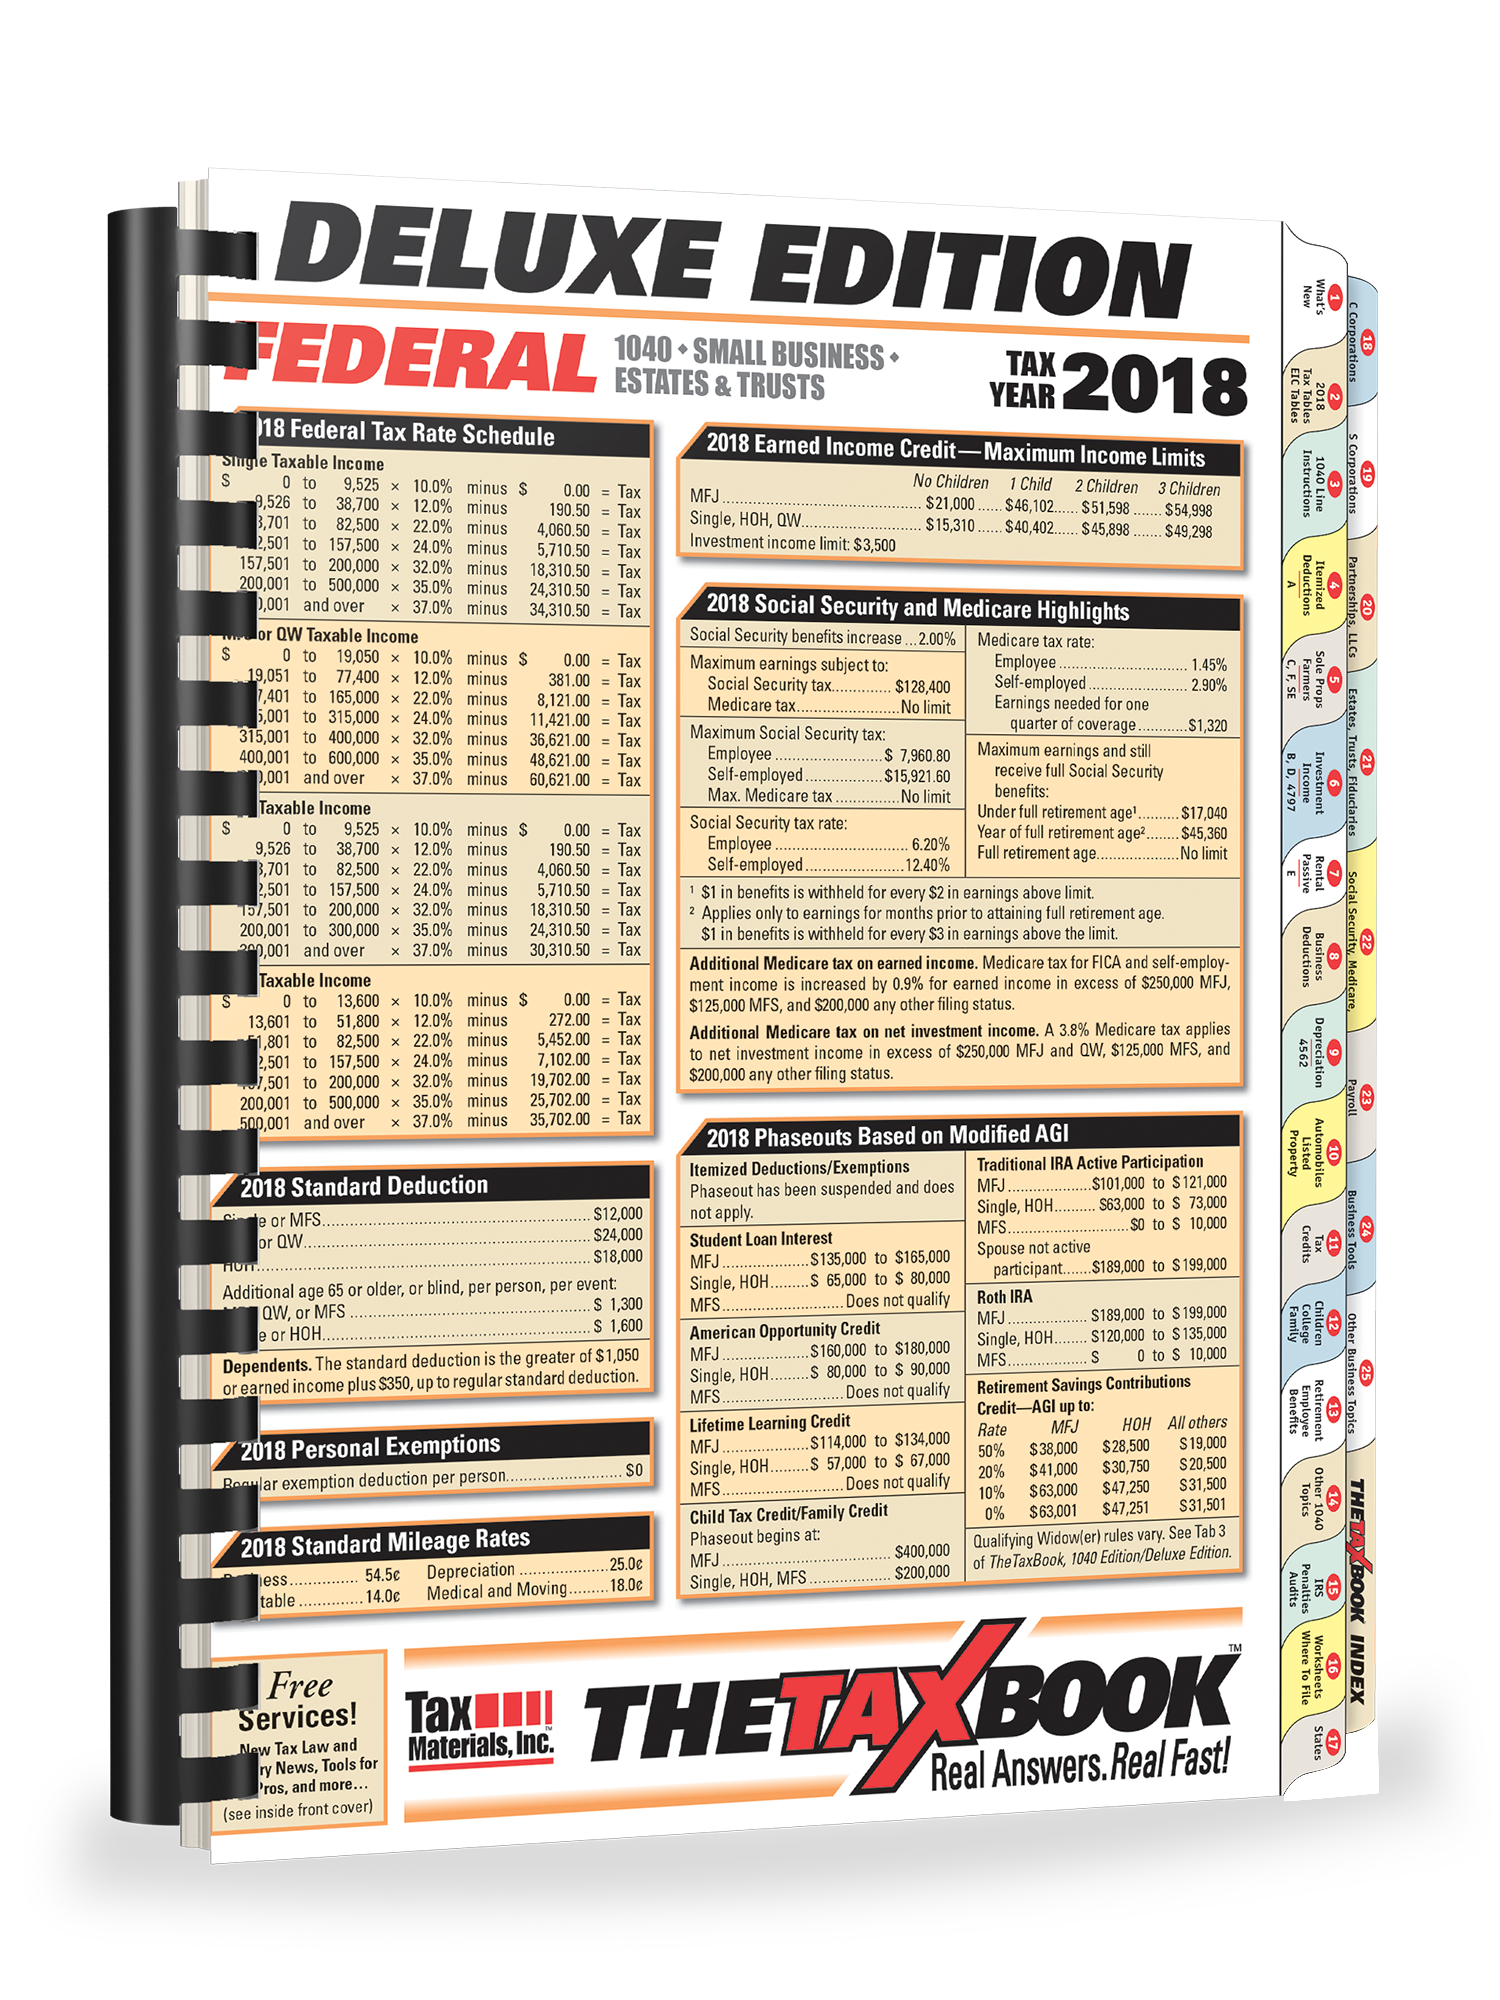 TheTaxBook Deluxe Edition Fast Answer Tax Book (2018) - #3882